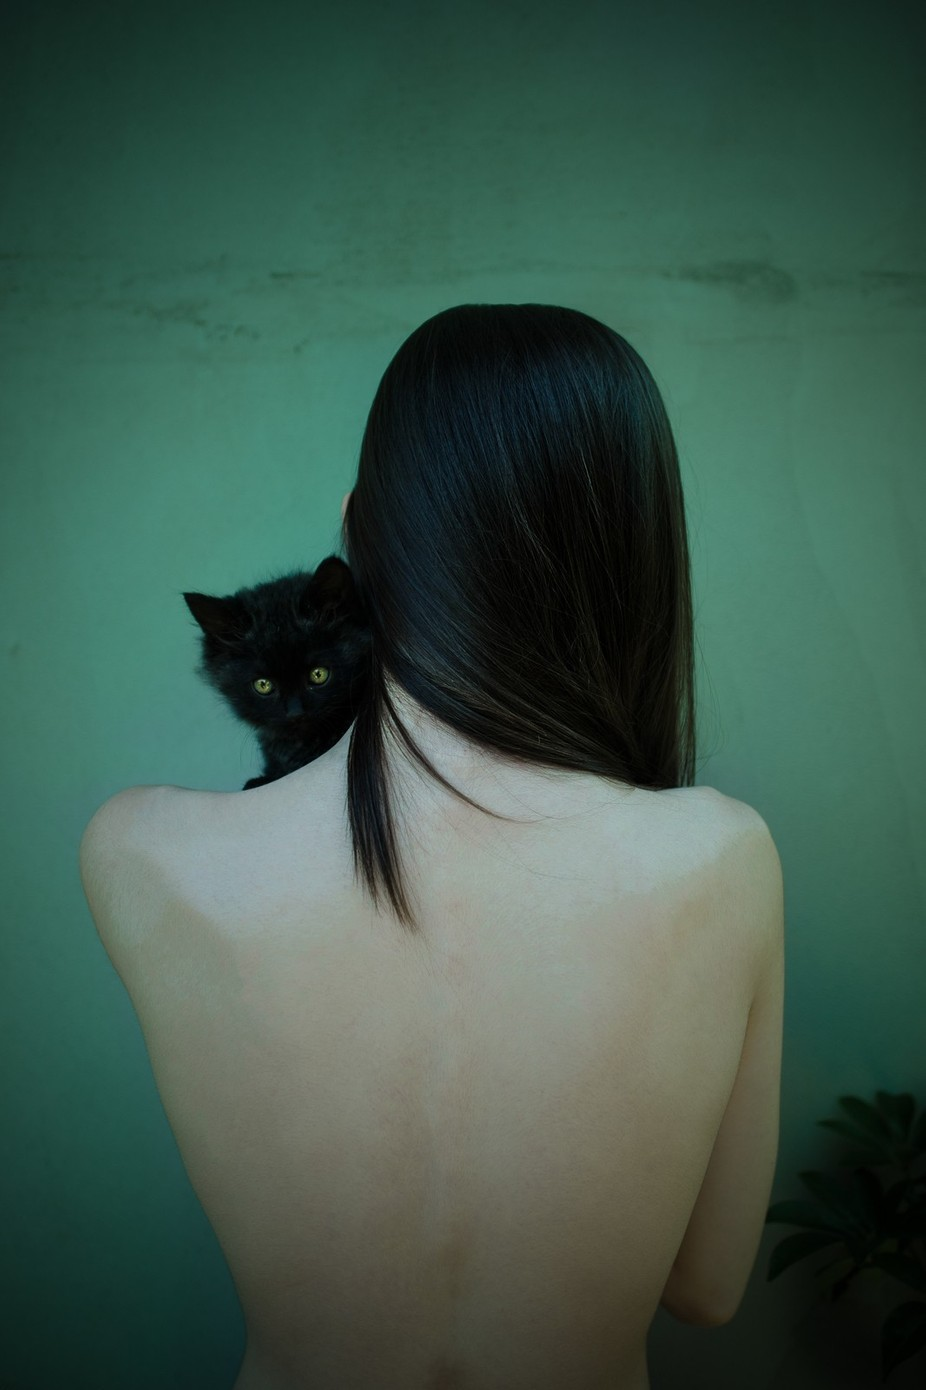 The girl and the cat by doina-domenicacojocaru - Creative Reality Photo Contest